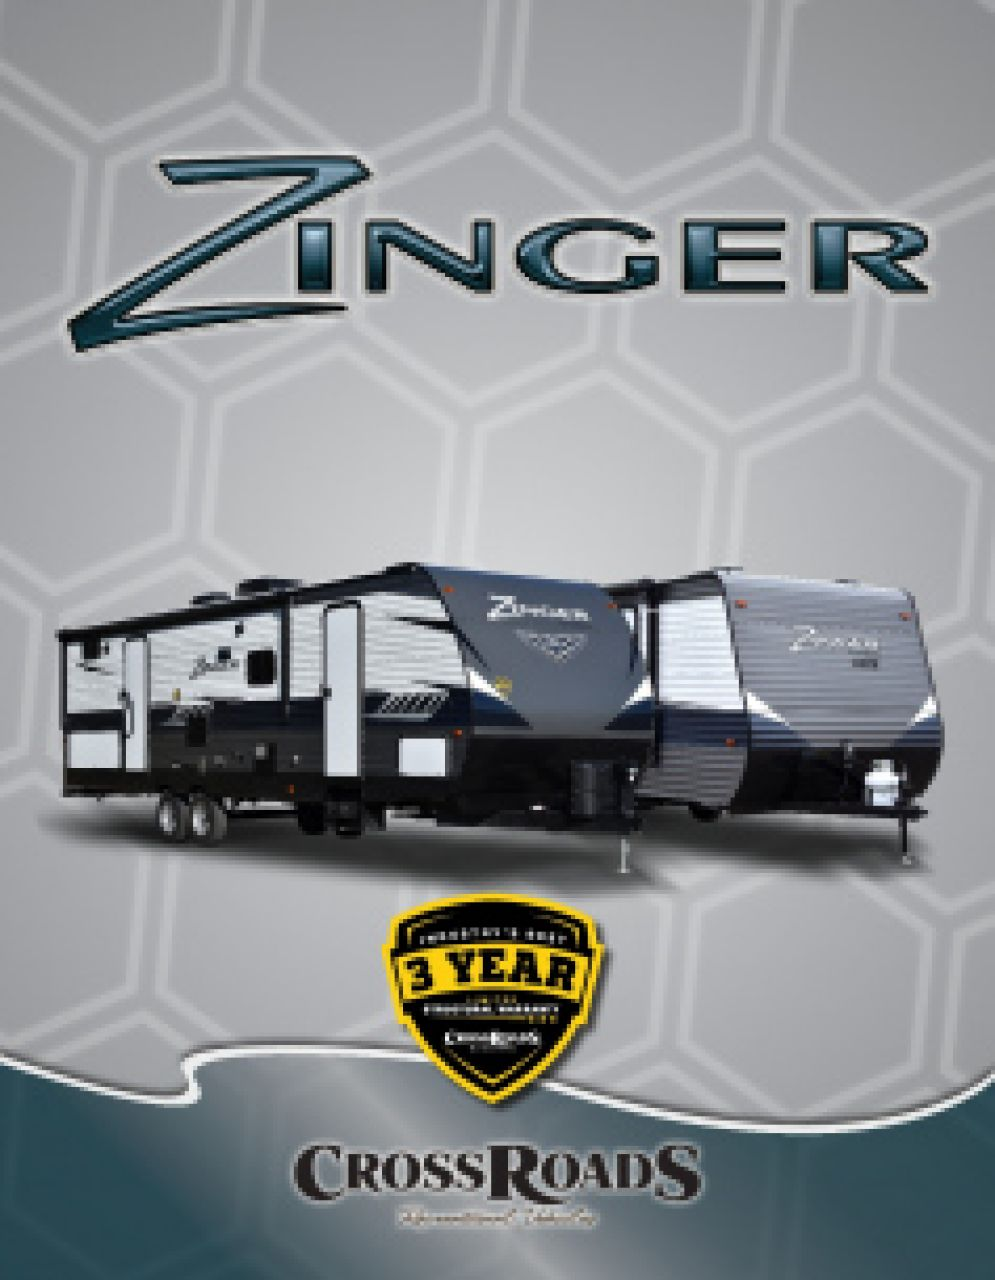 2019 CrossRoads Zinger RV Brochure Cover